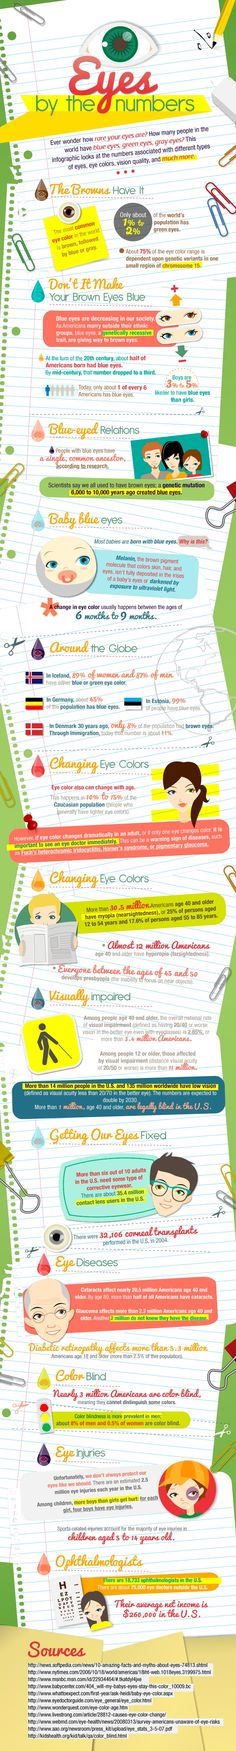 Datos Sobre los Ojos | Eyes by the Numbers